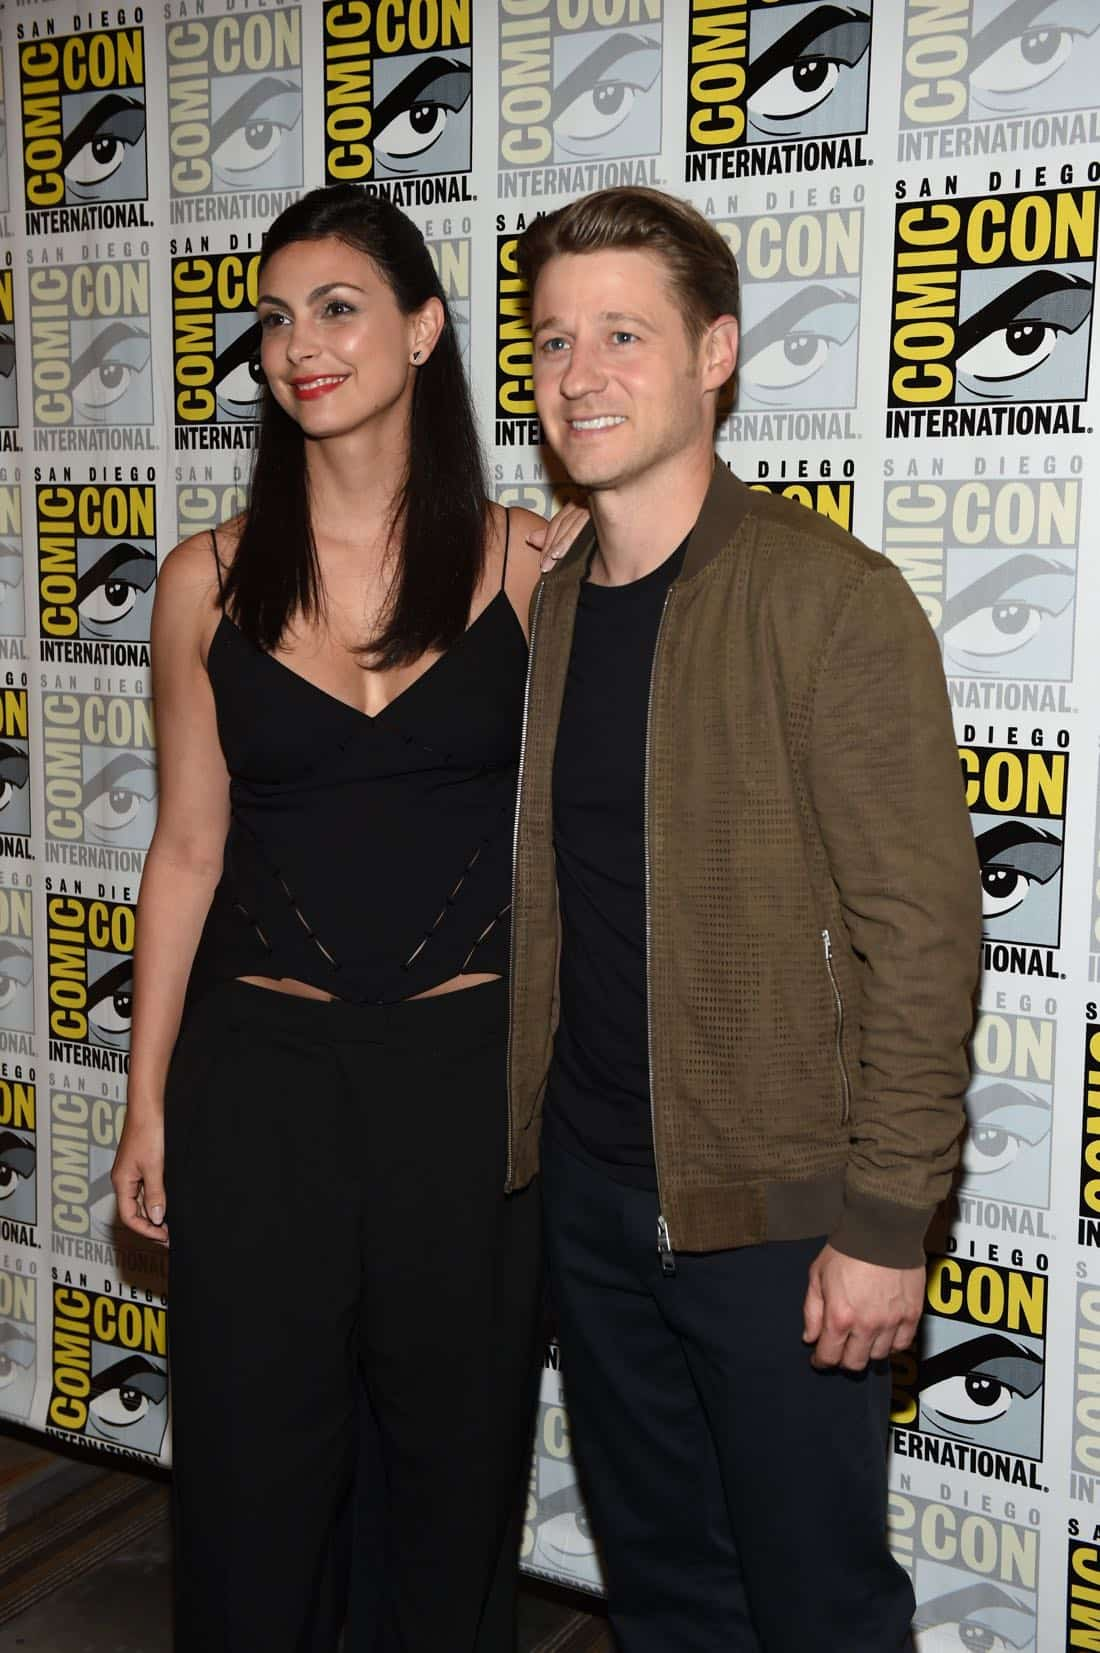 FOX FANFARE AT SAN DIEGO COMIC-CON © 2016: GOTHAM cast members Morena Baccarin and Ben McKenzie during GOTHAM press room on Saturday, July 23 at the FOX FANFARE AT SAN DIEGO COMIC-CON © 2016. CR: Scott Kirkland/FOX © 2016 FOX BROADCASTING